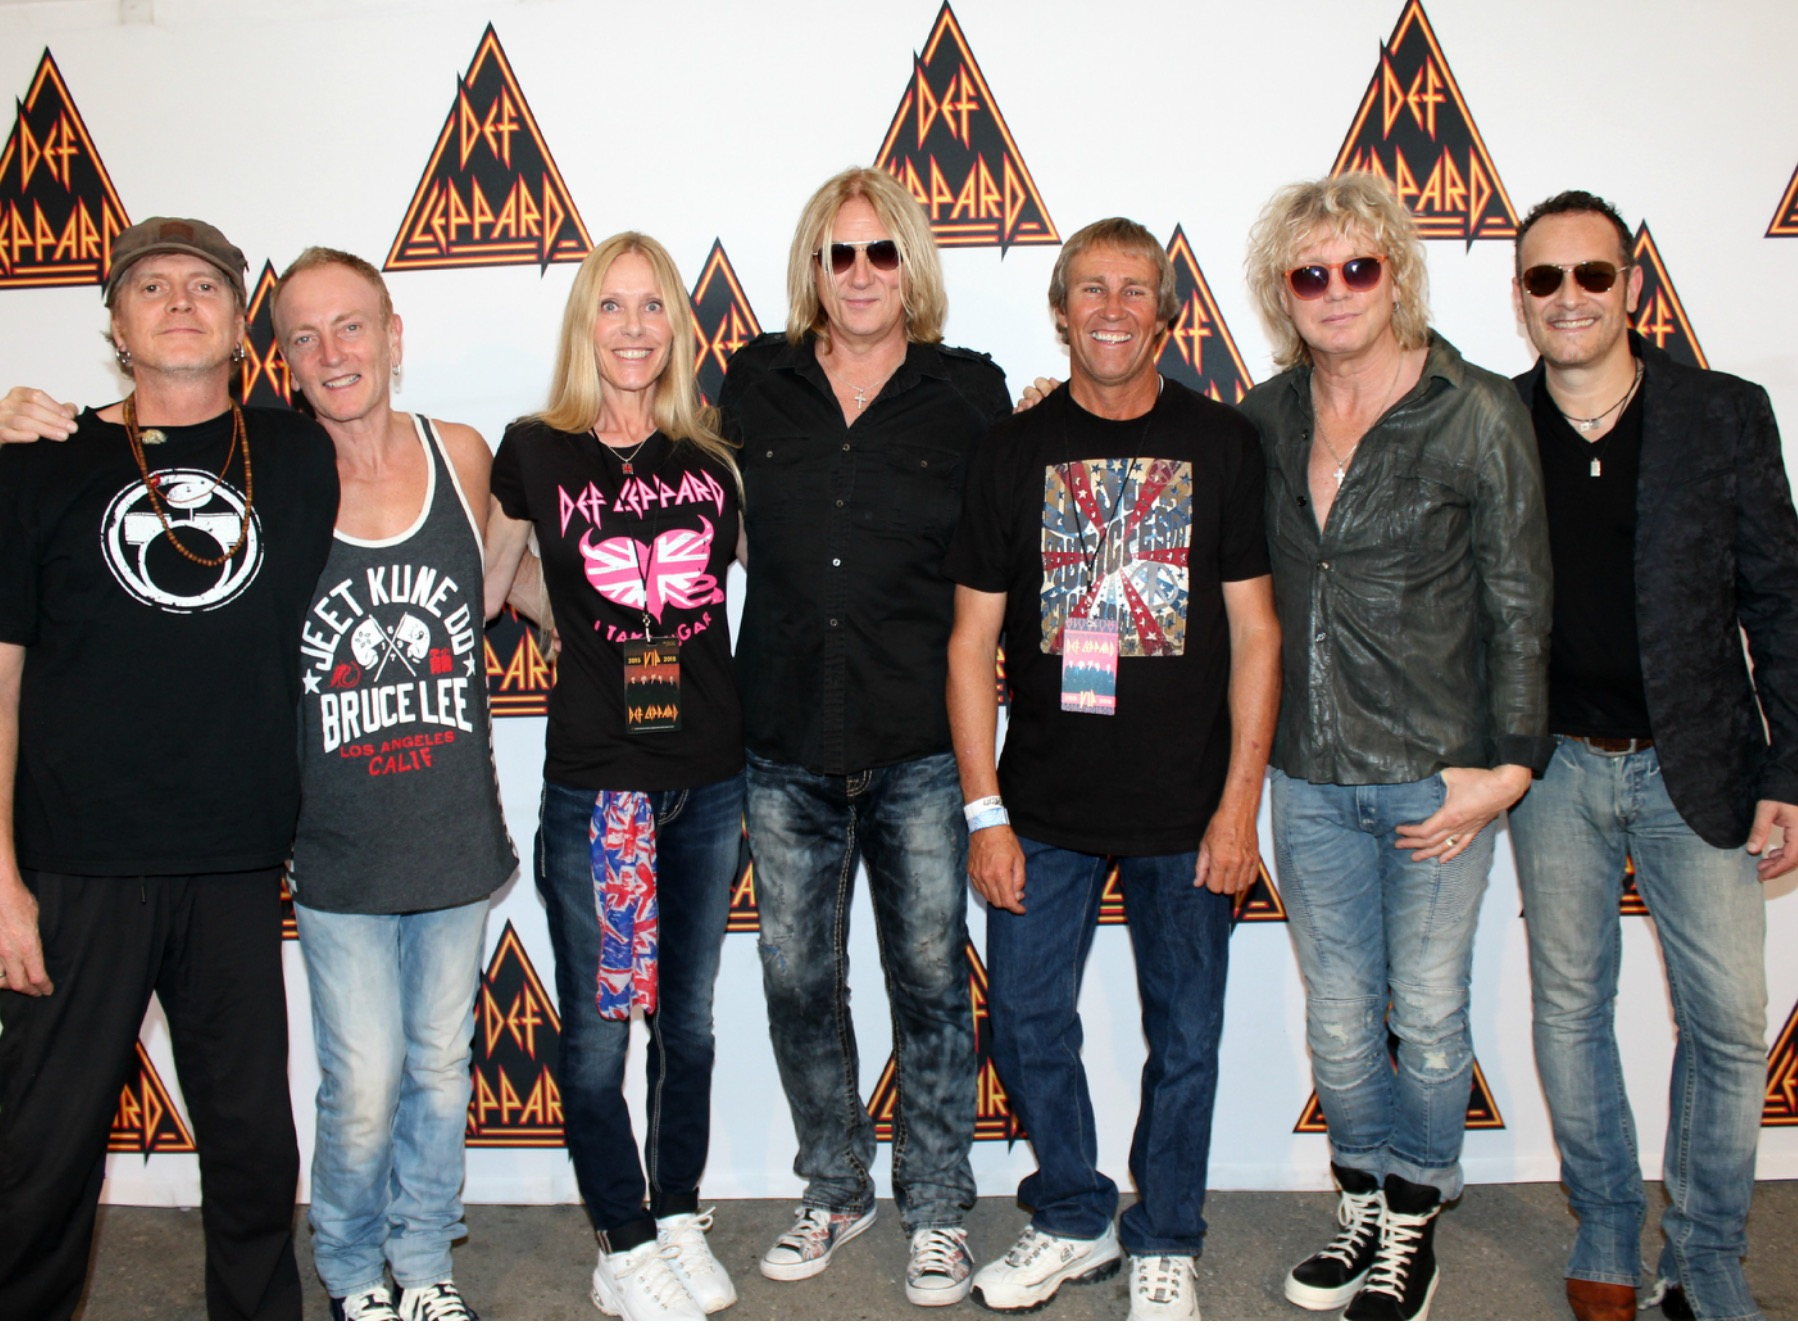 Def leppard meet greets with icjuk designs jennifer mark berry in west valley city utah at the usana amphitheater on september kristyandbryce Choice Image